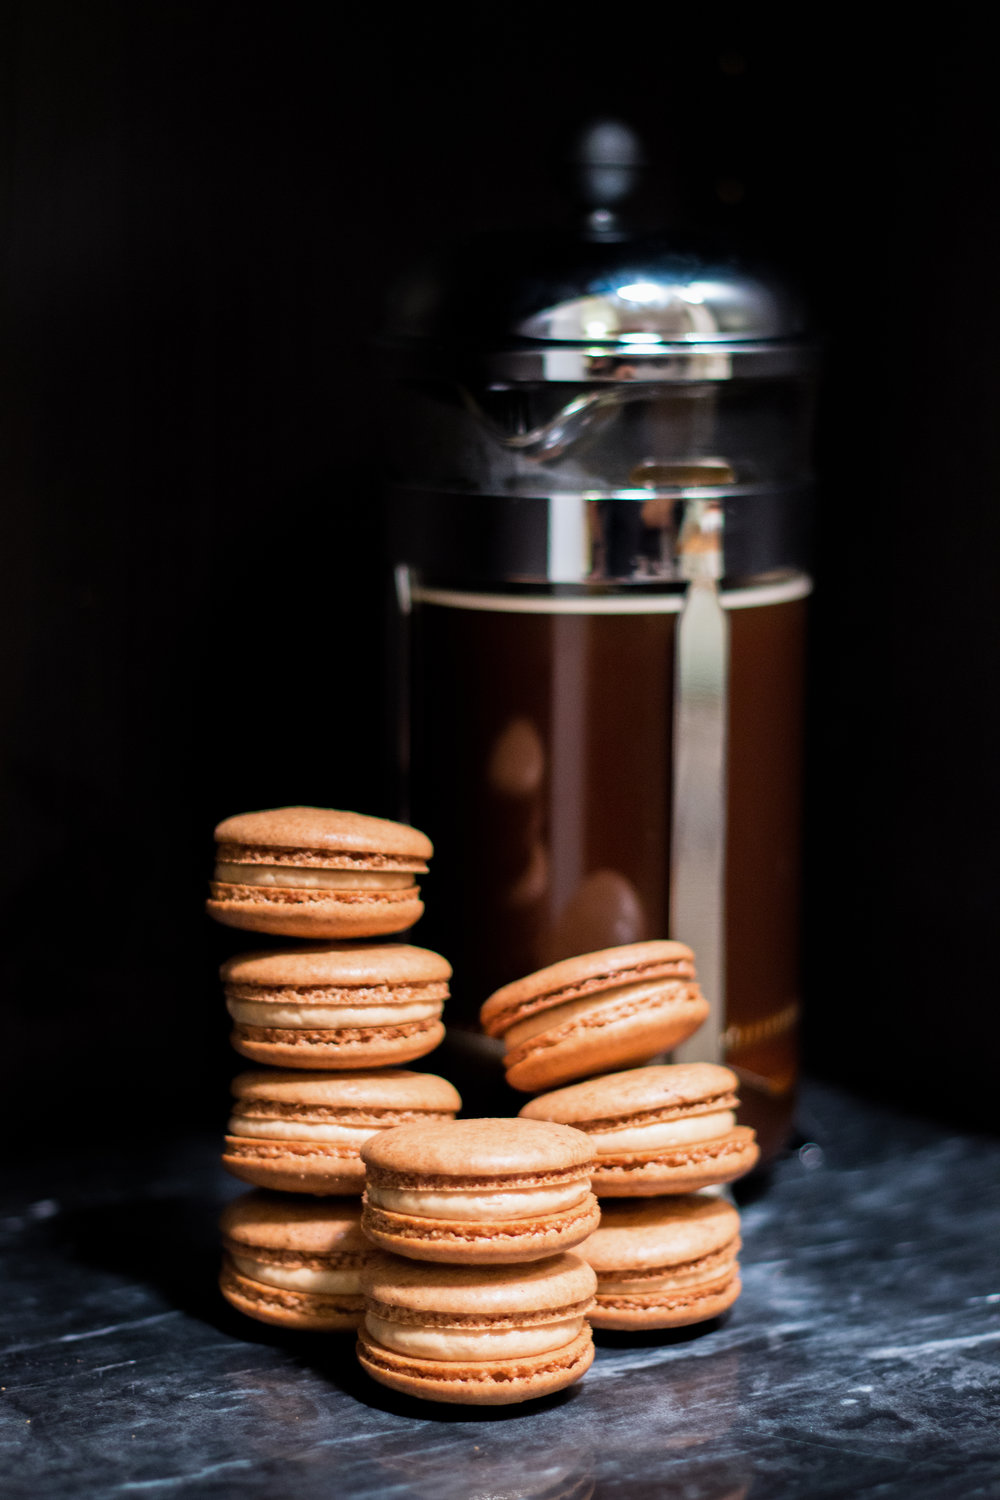 coffee_macarons.jpg